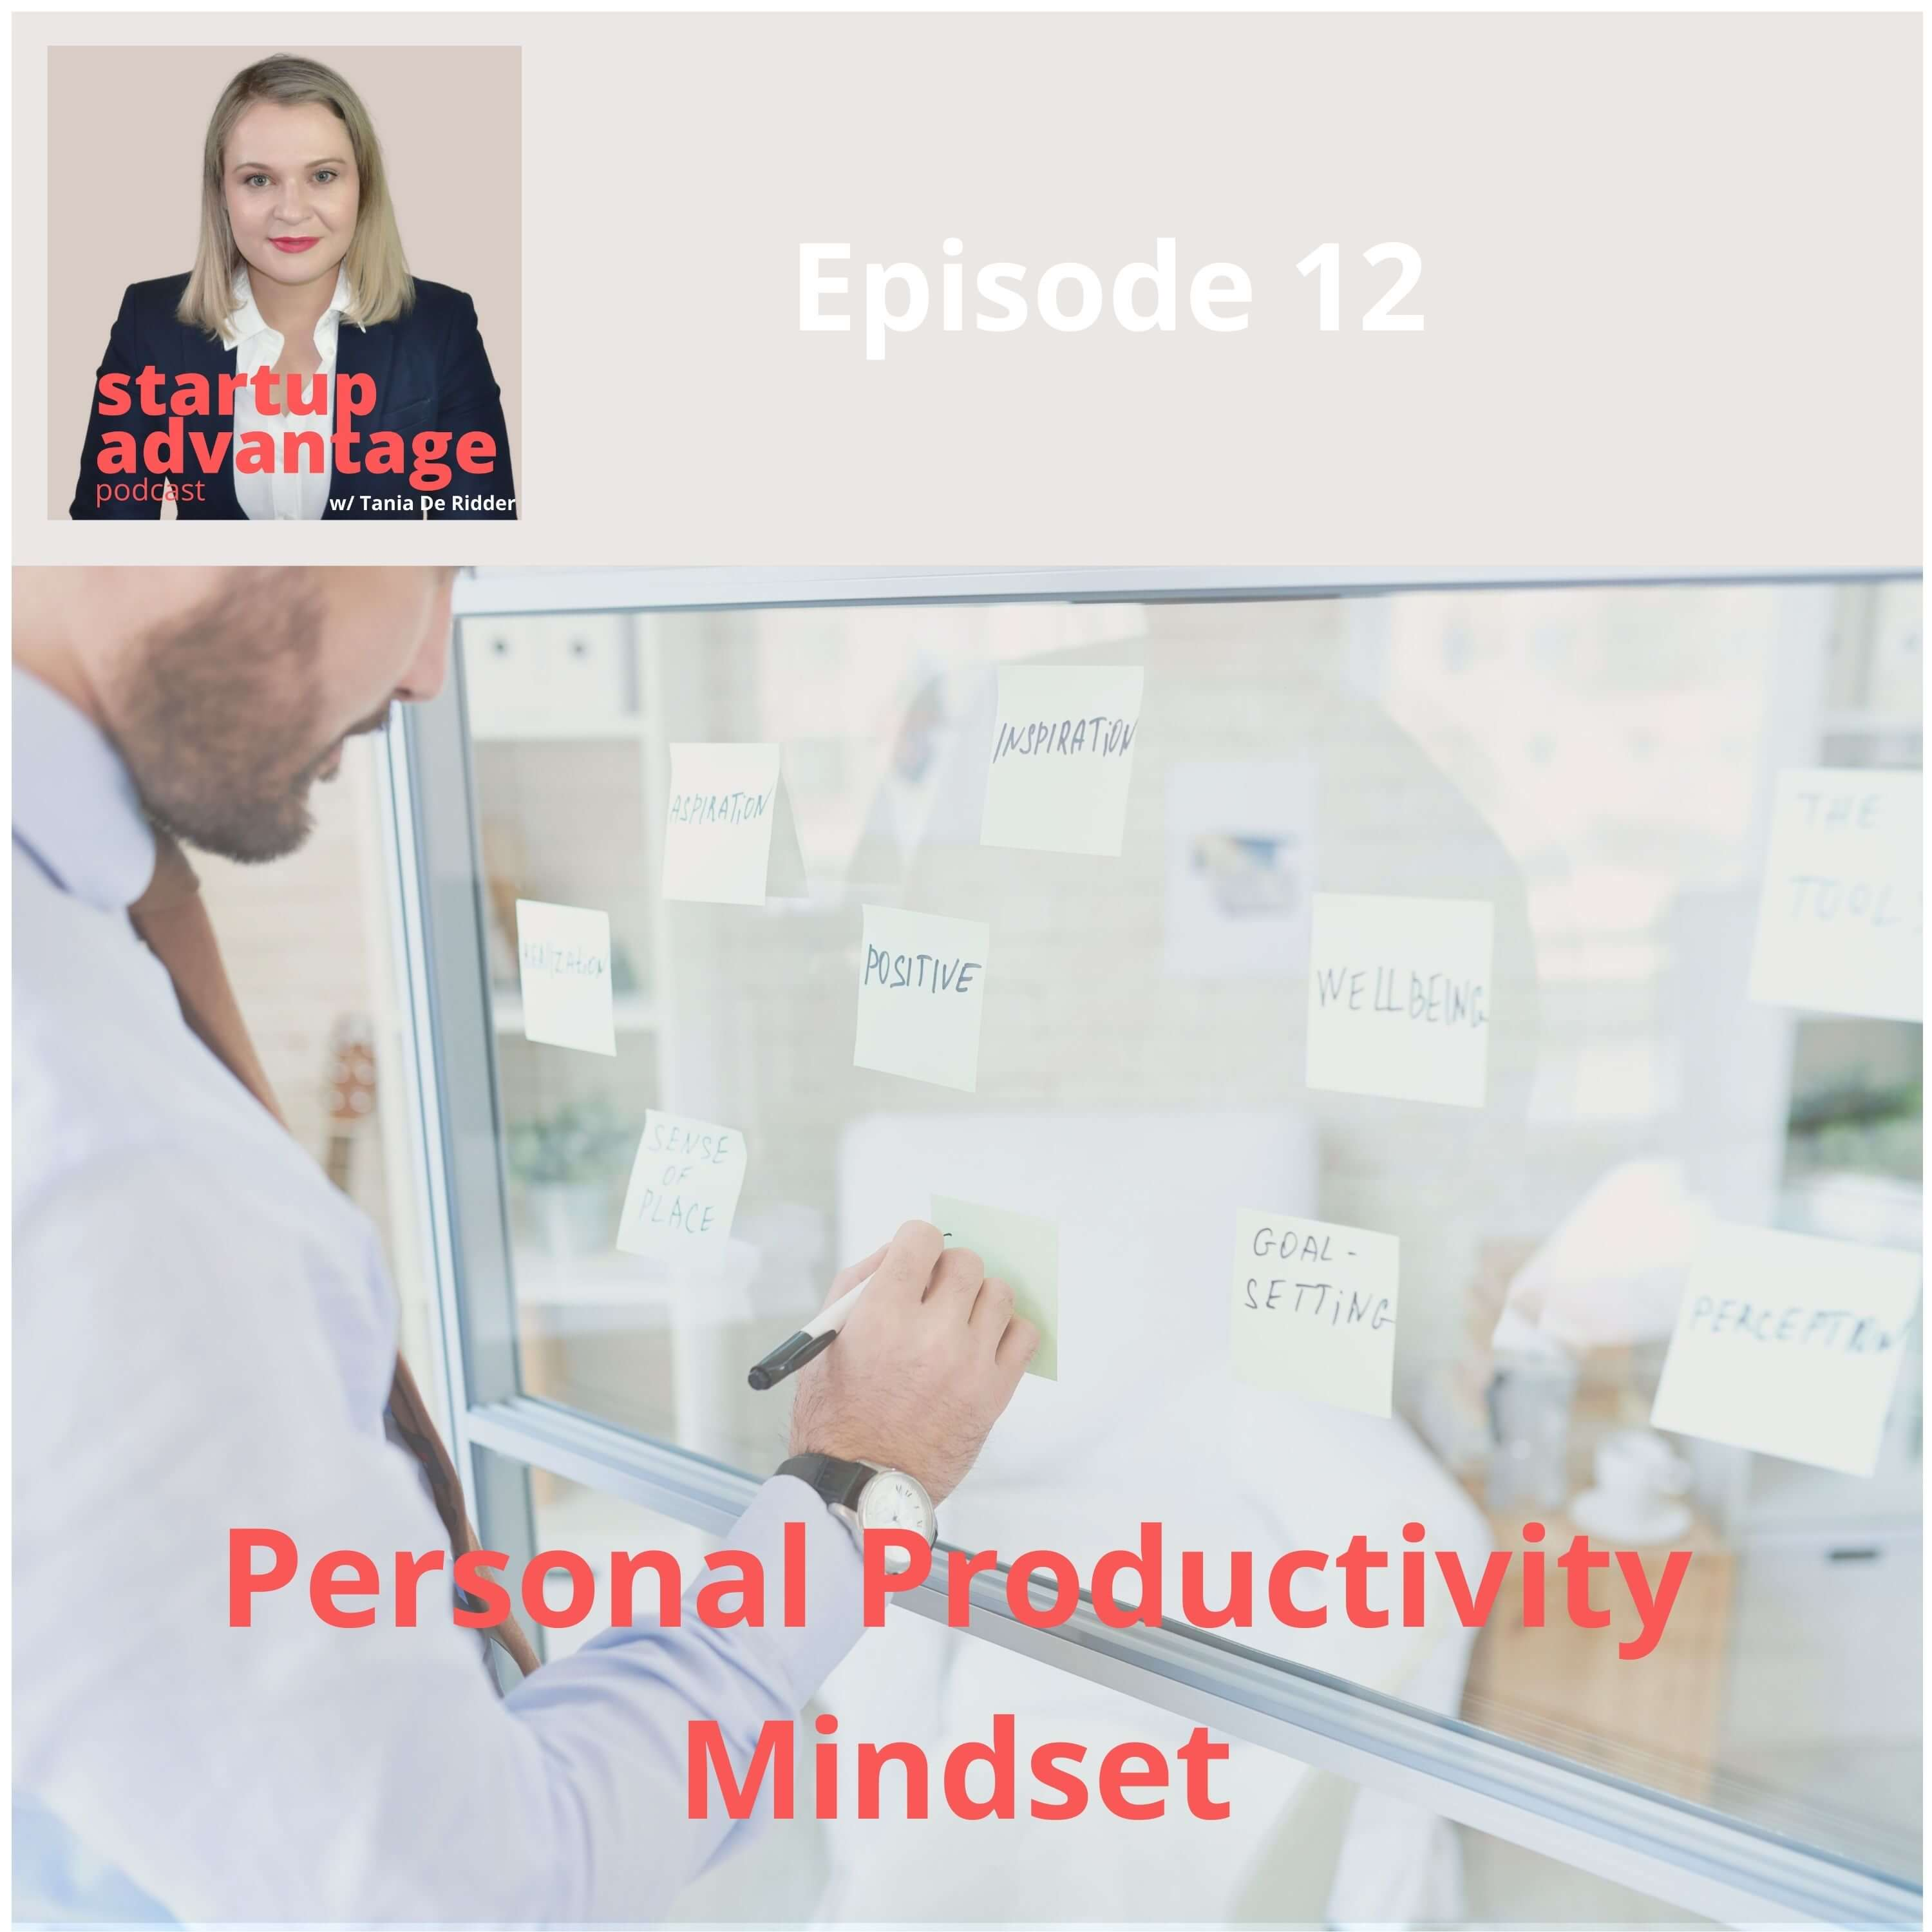 2 Tips to be Mindful of Your Personal Productivity Mindset Daily